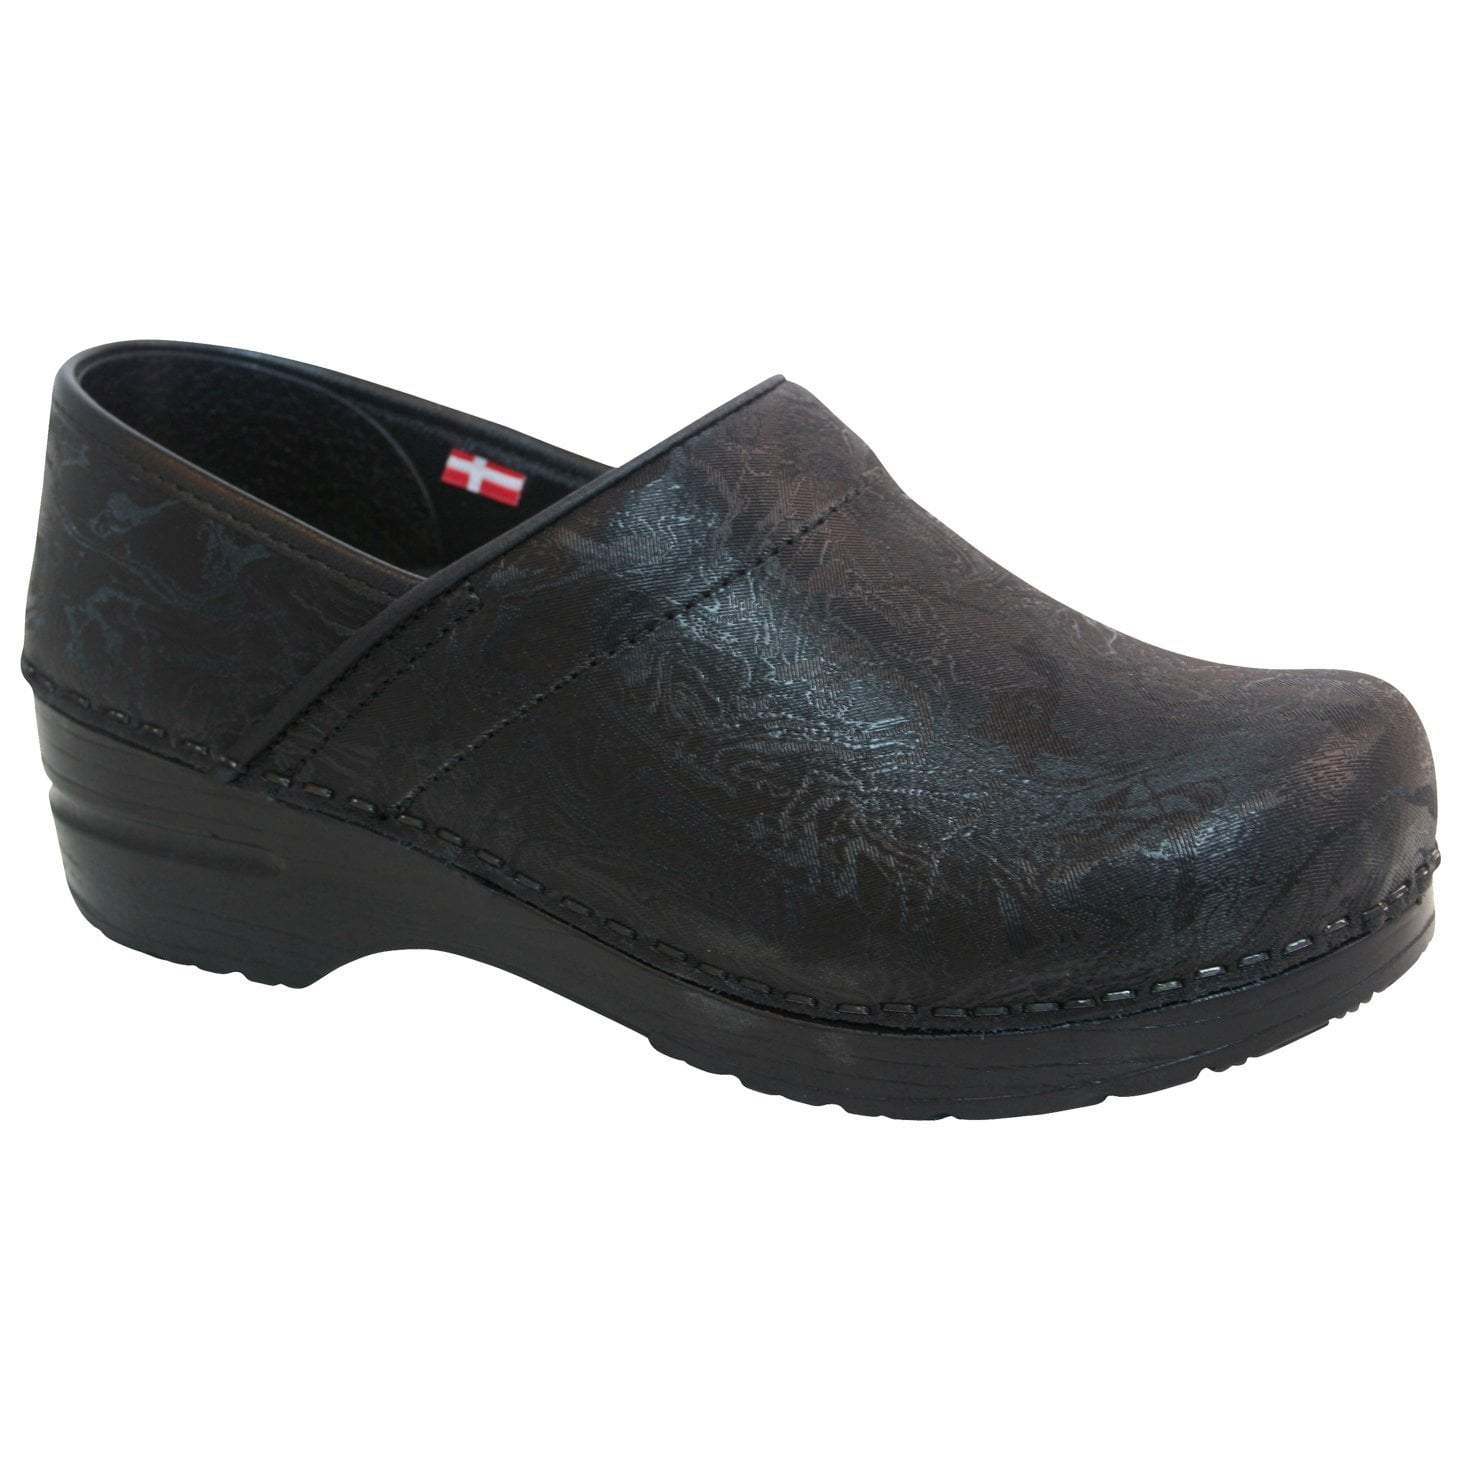 Sanita Sedona Women's Closed Back Clog